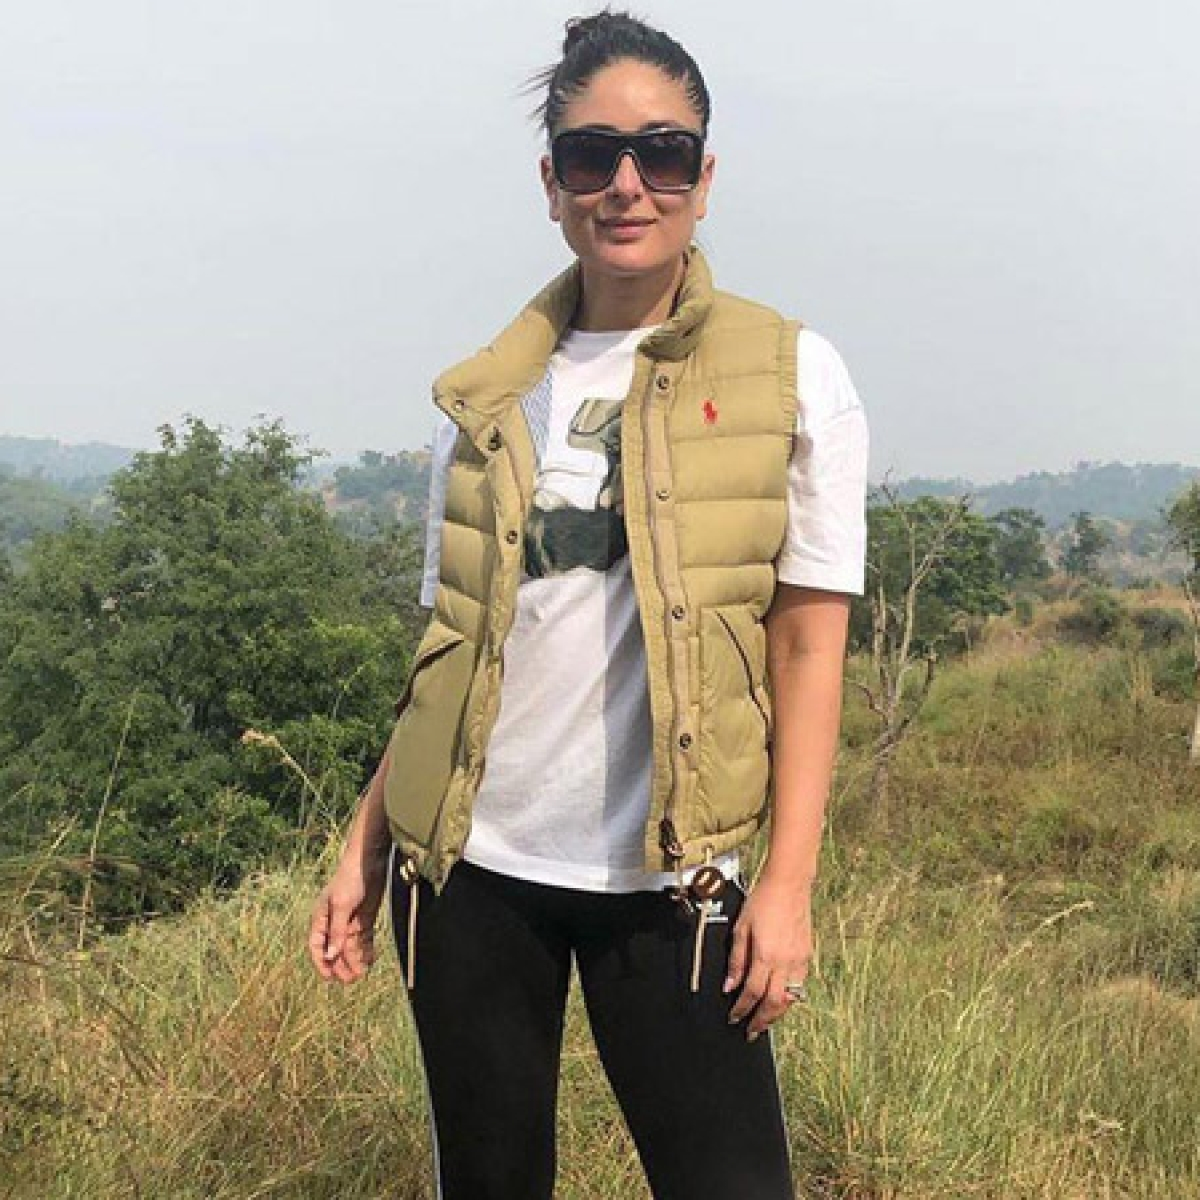 Kareena Kapoor Khan takes a break from work, goes trekking on mountains